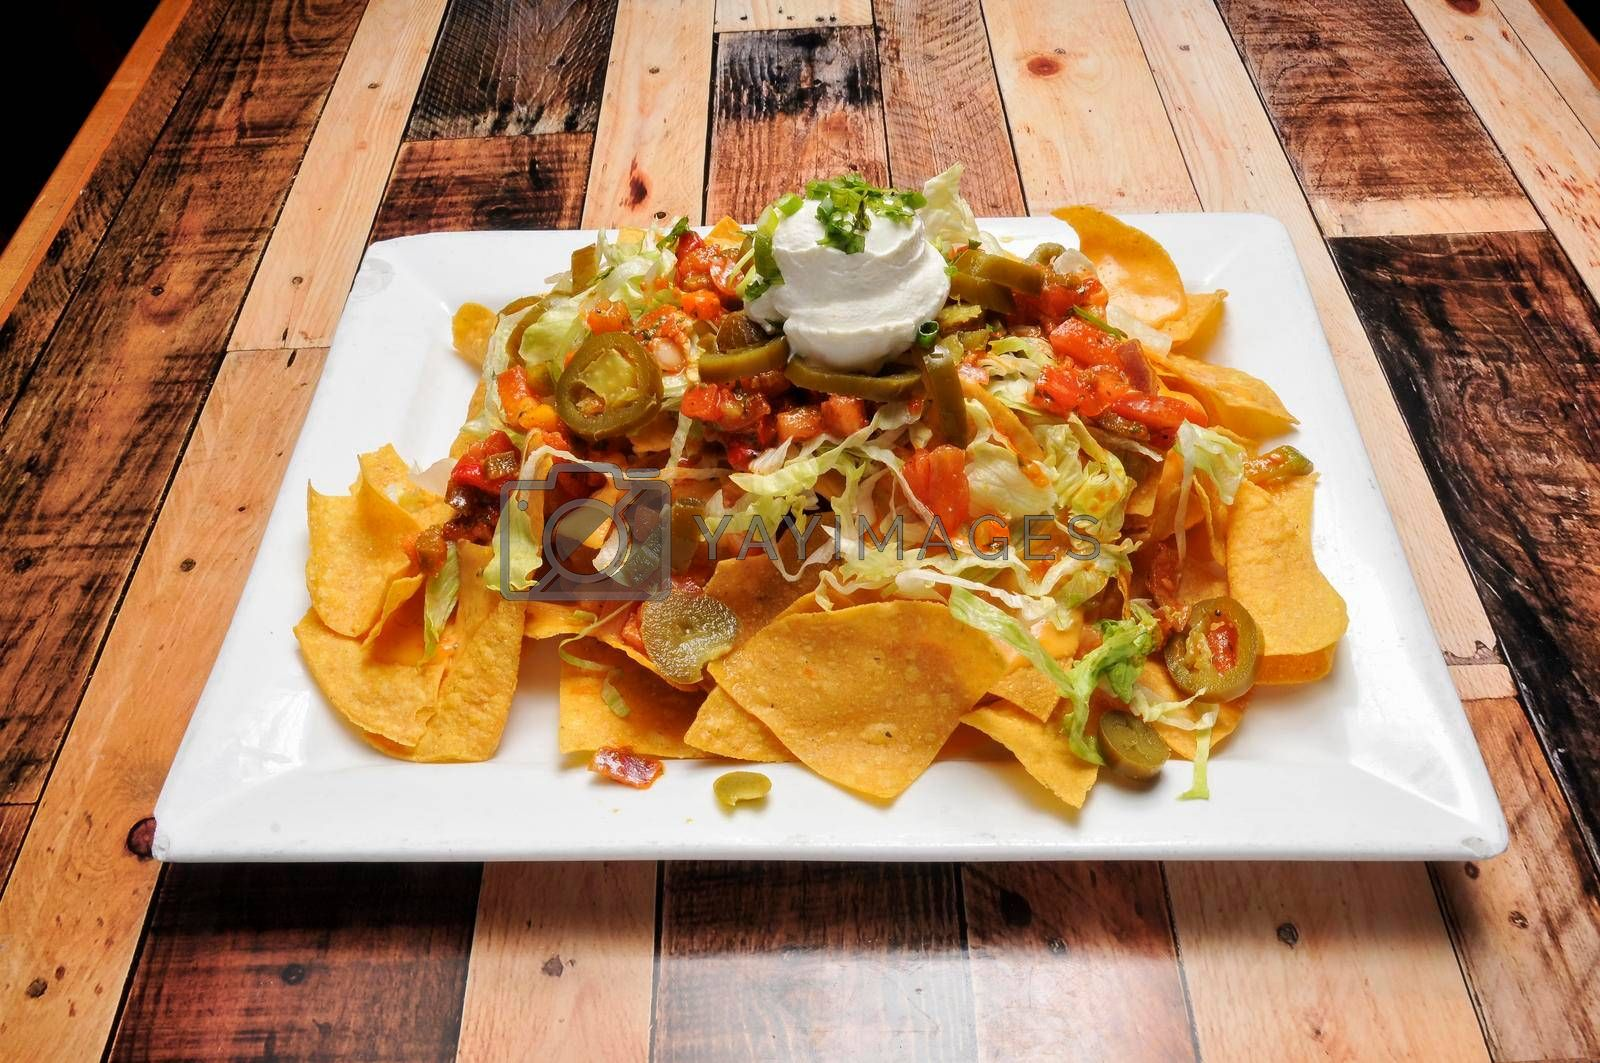 Traditional and Authentic Mexican cuisine known as nachos